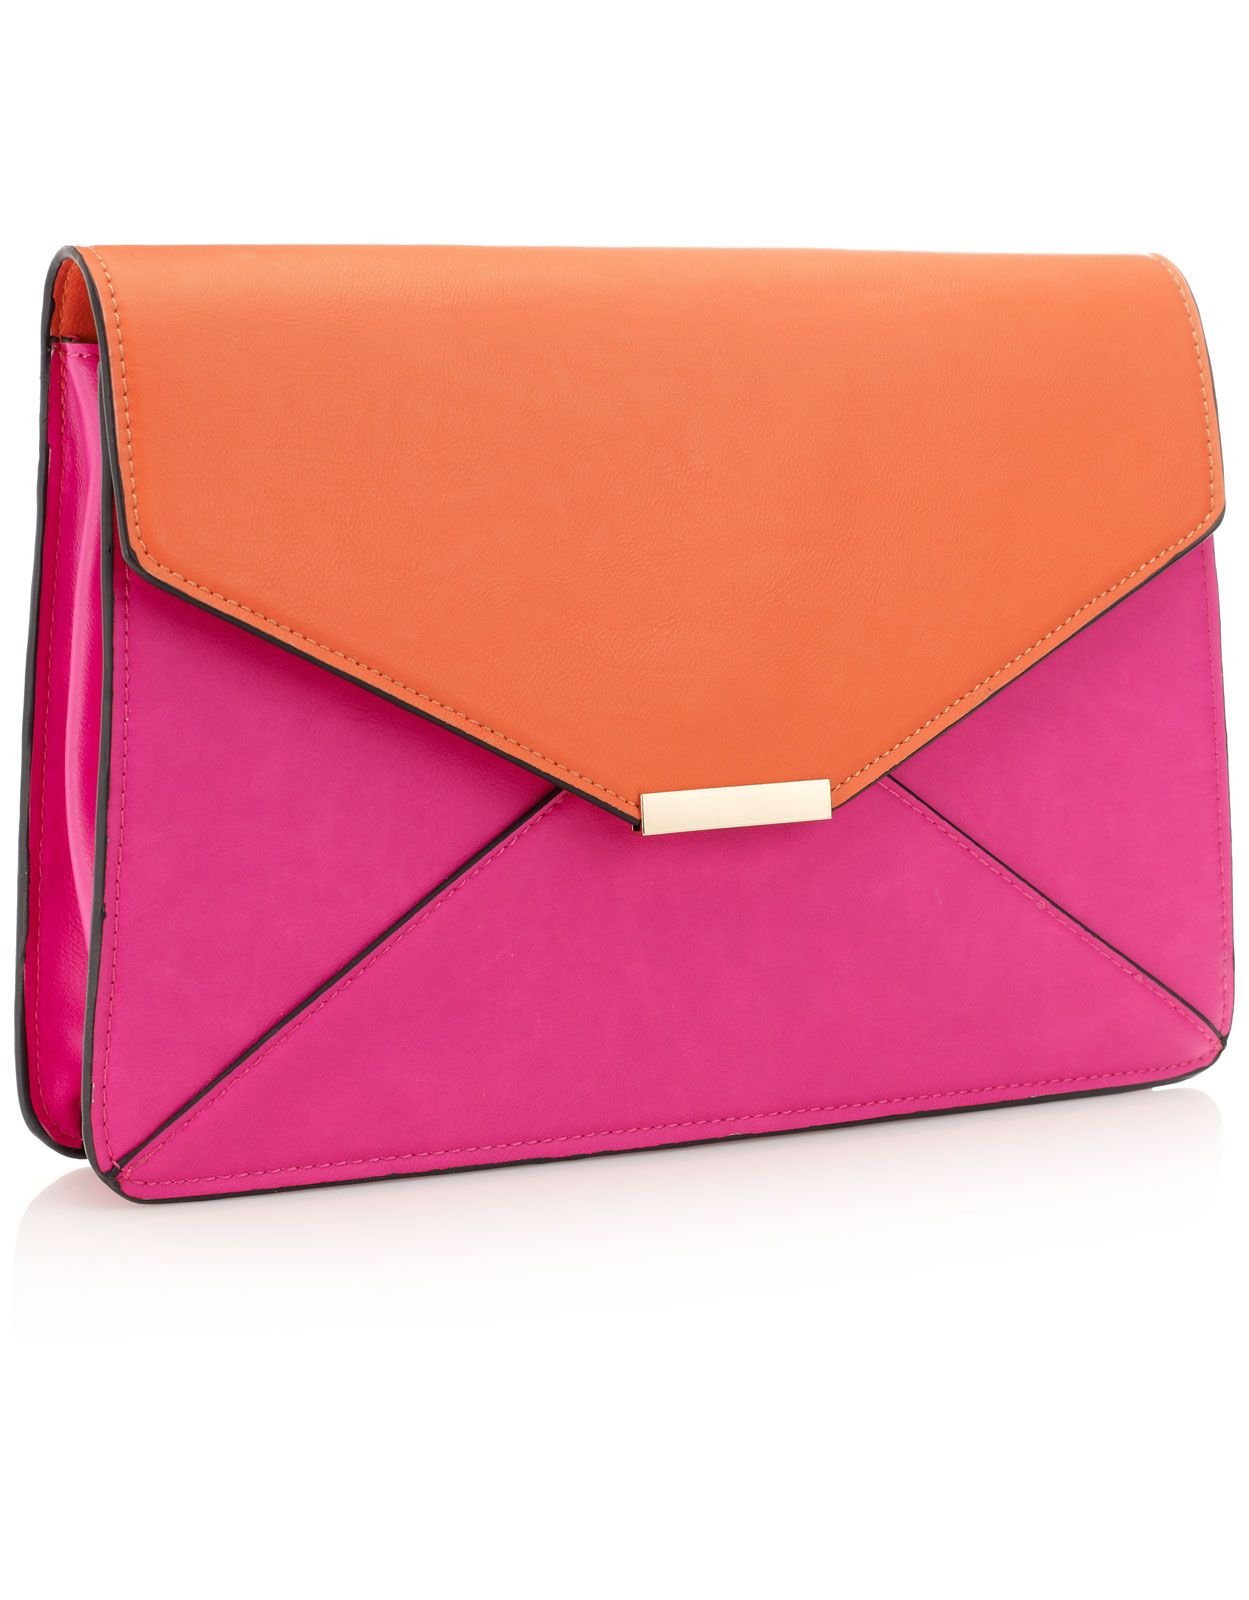 Color Block Large Envelope Clutch | ACCESSORIES SHOW™ | Pinterest ...